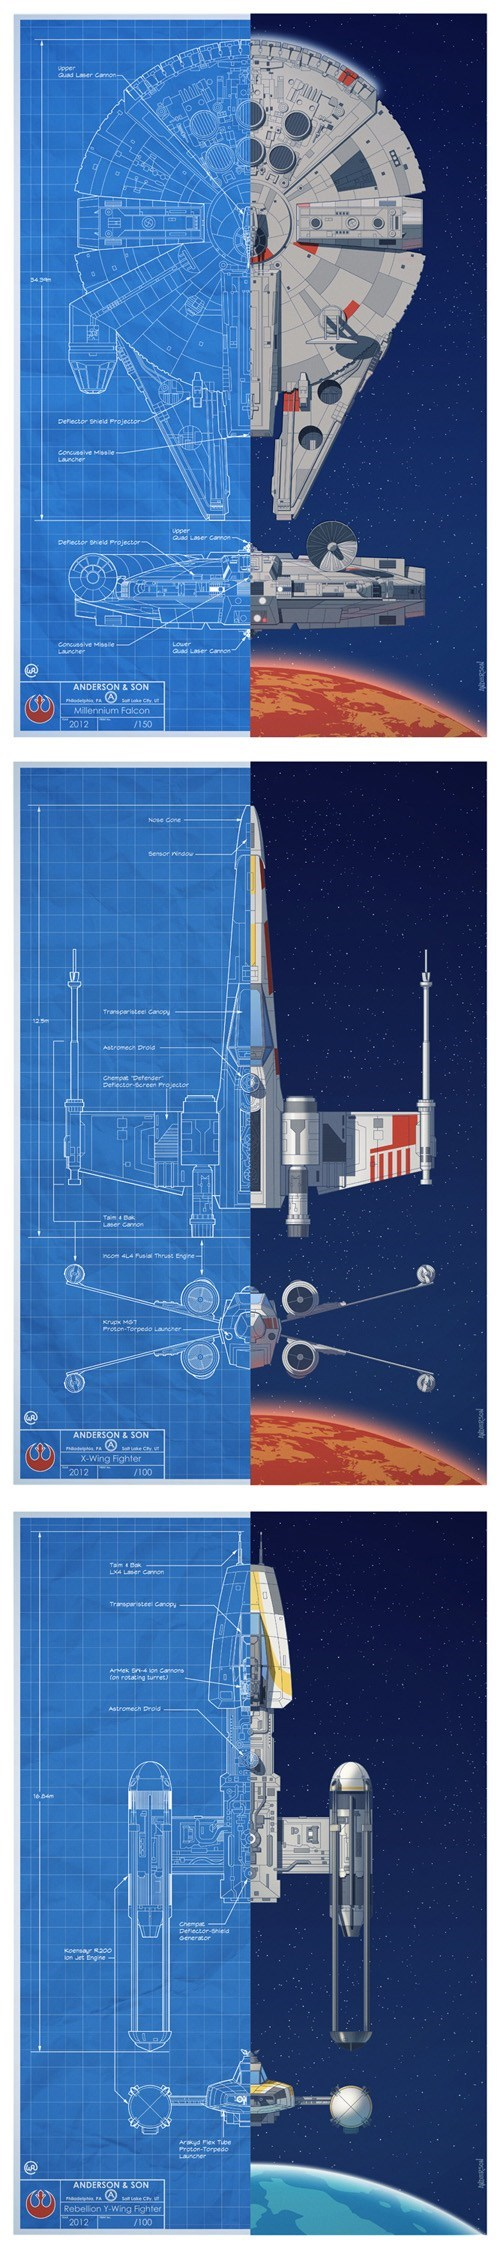 Y-Wing Millenium Falcon rebels star wars posters Fan Art X-Wing Fighter space ships - 6938510080